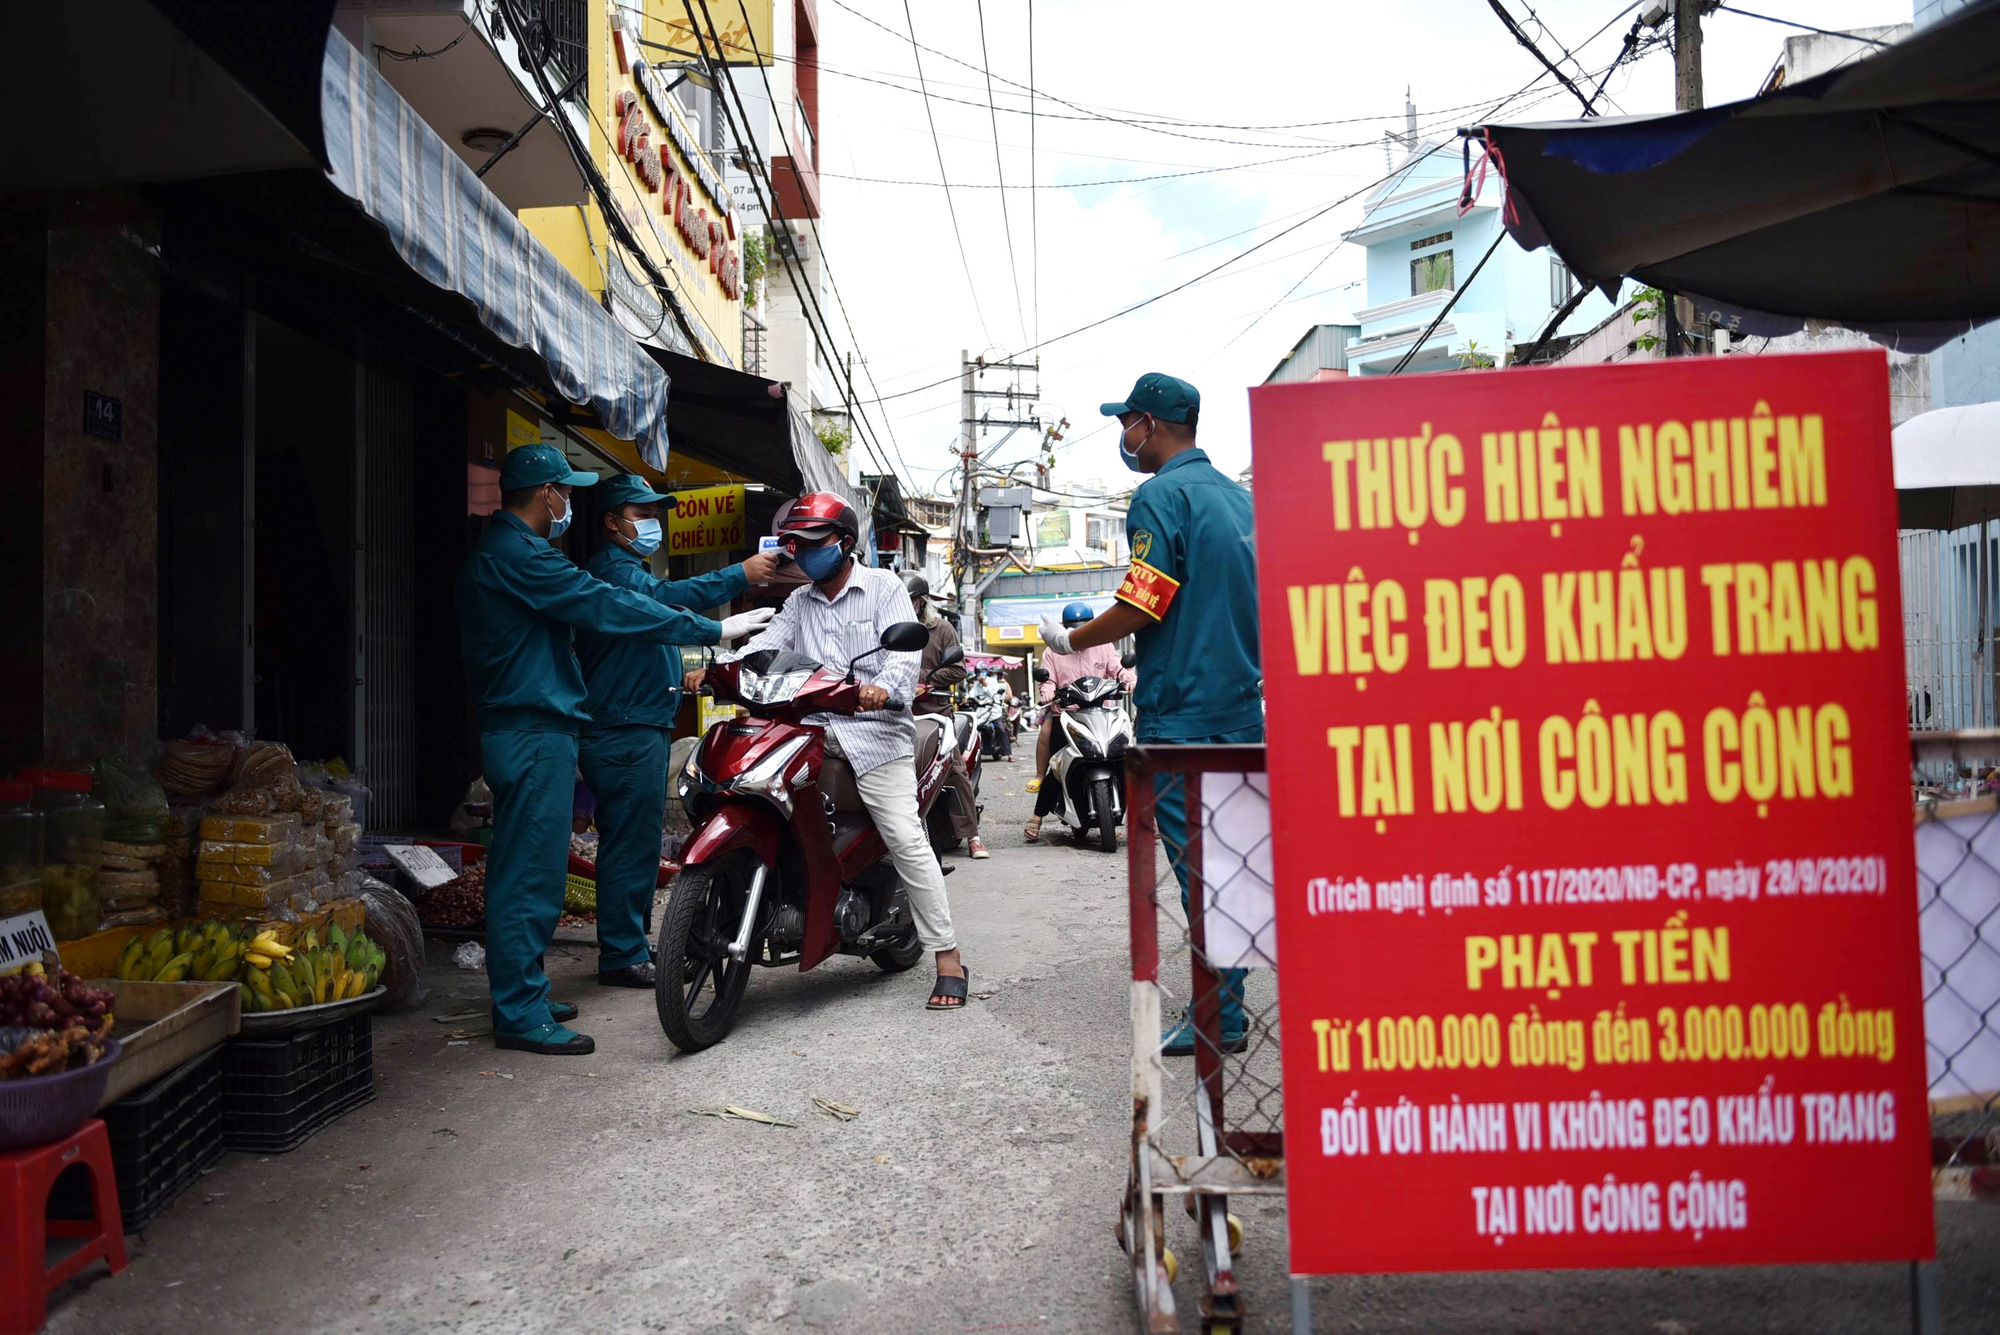 What are social distancing measures in Ho Chi Minh City?